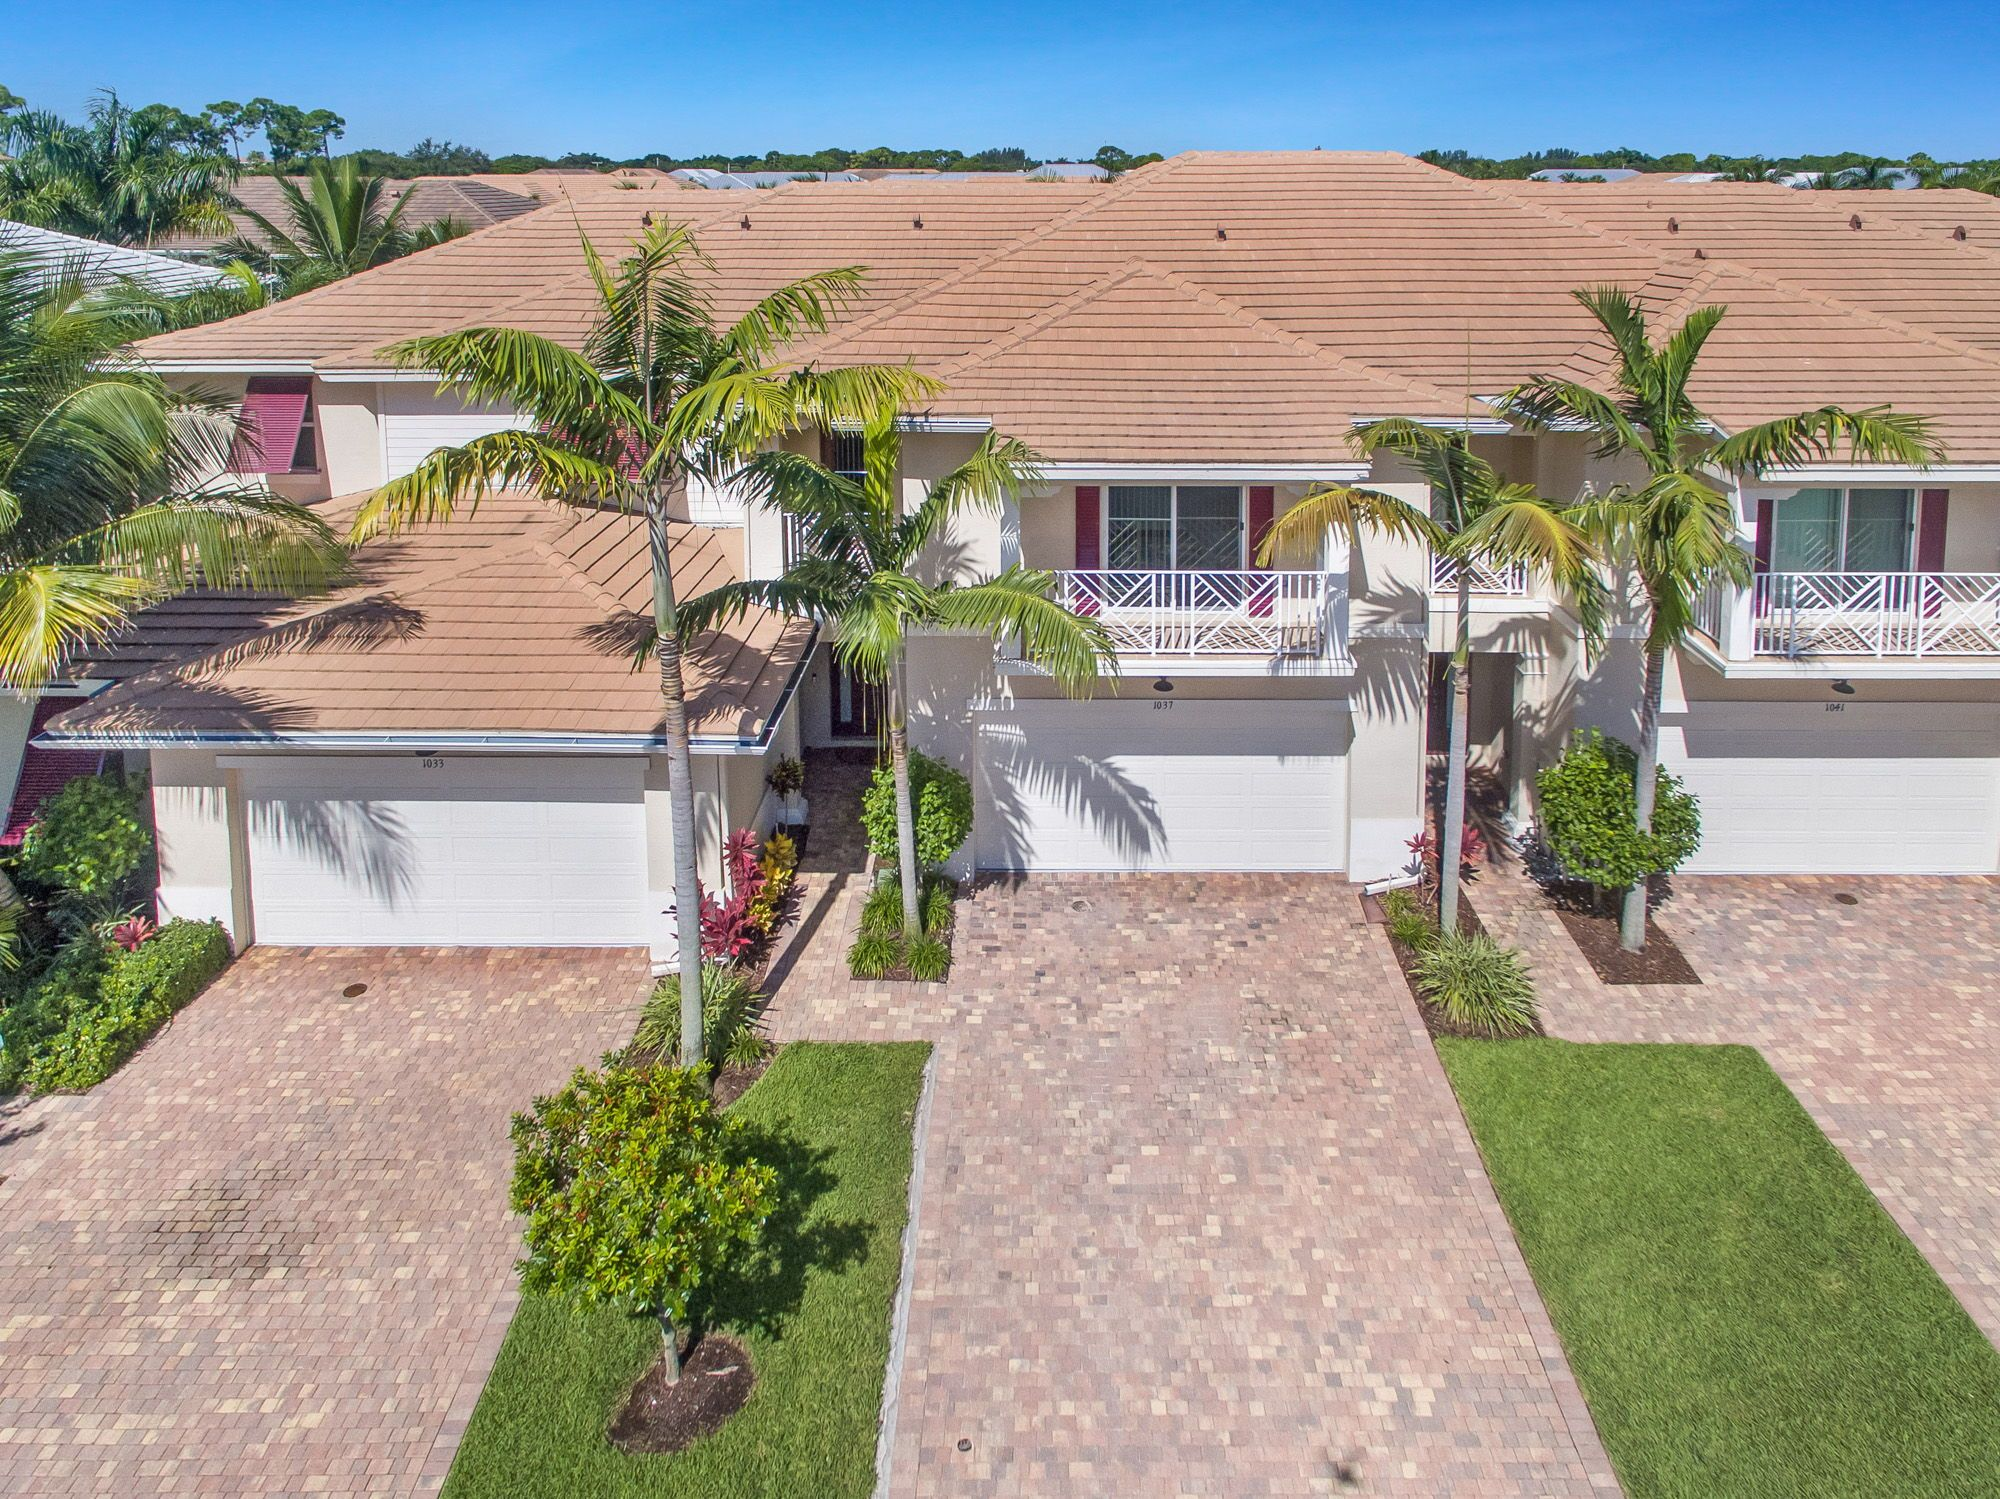 d2bc8294beead1066f56dcab6f99f5e0 - The Hamptons Of Palm Beach Gardens